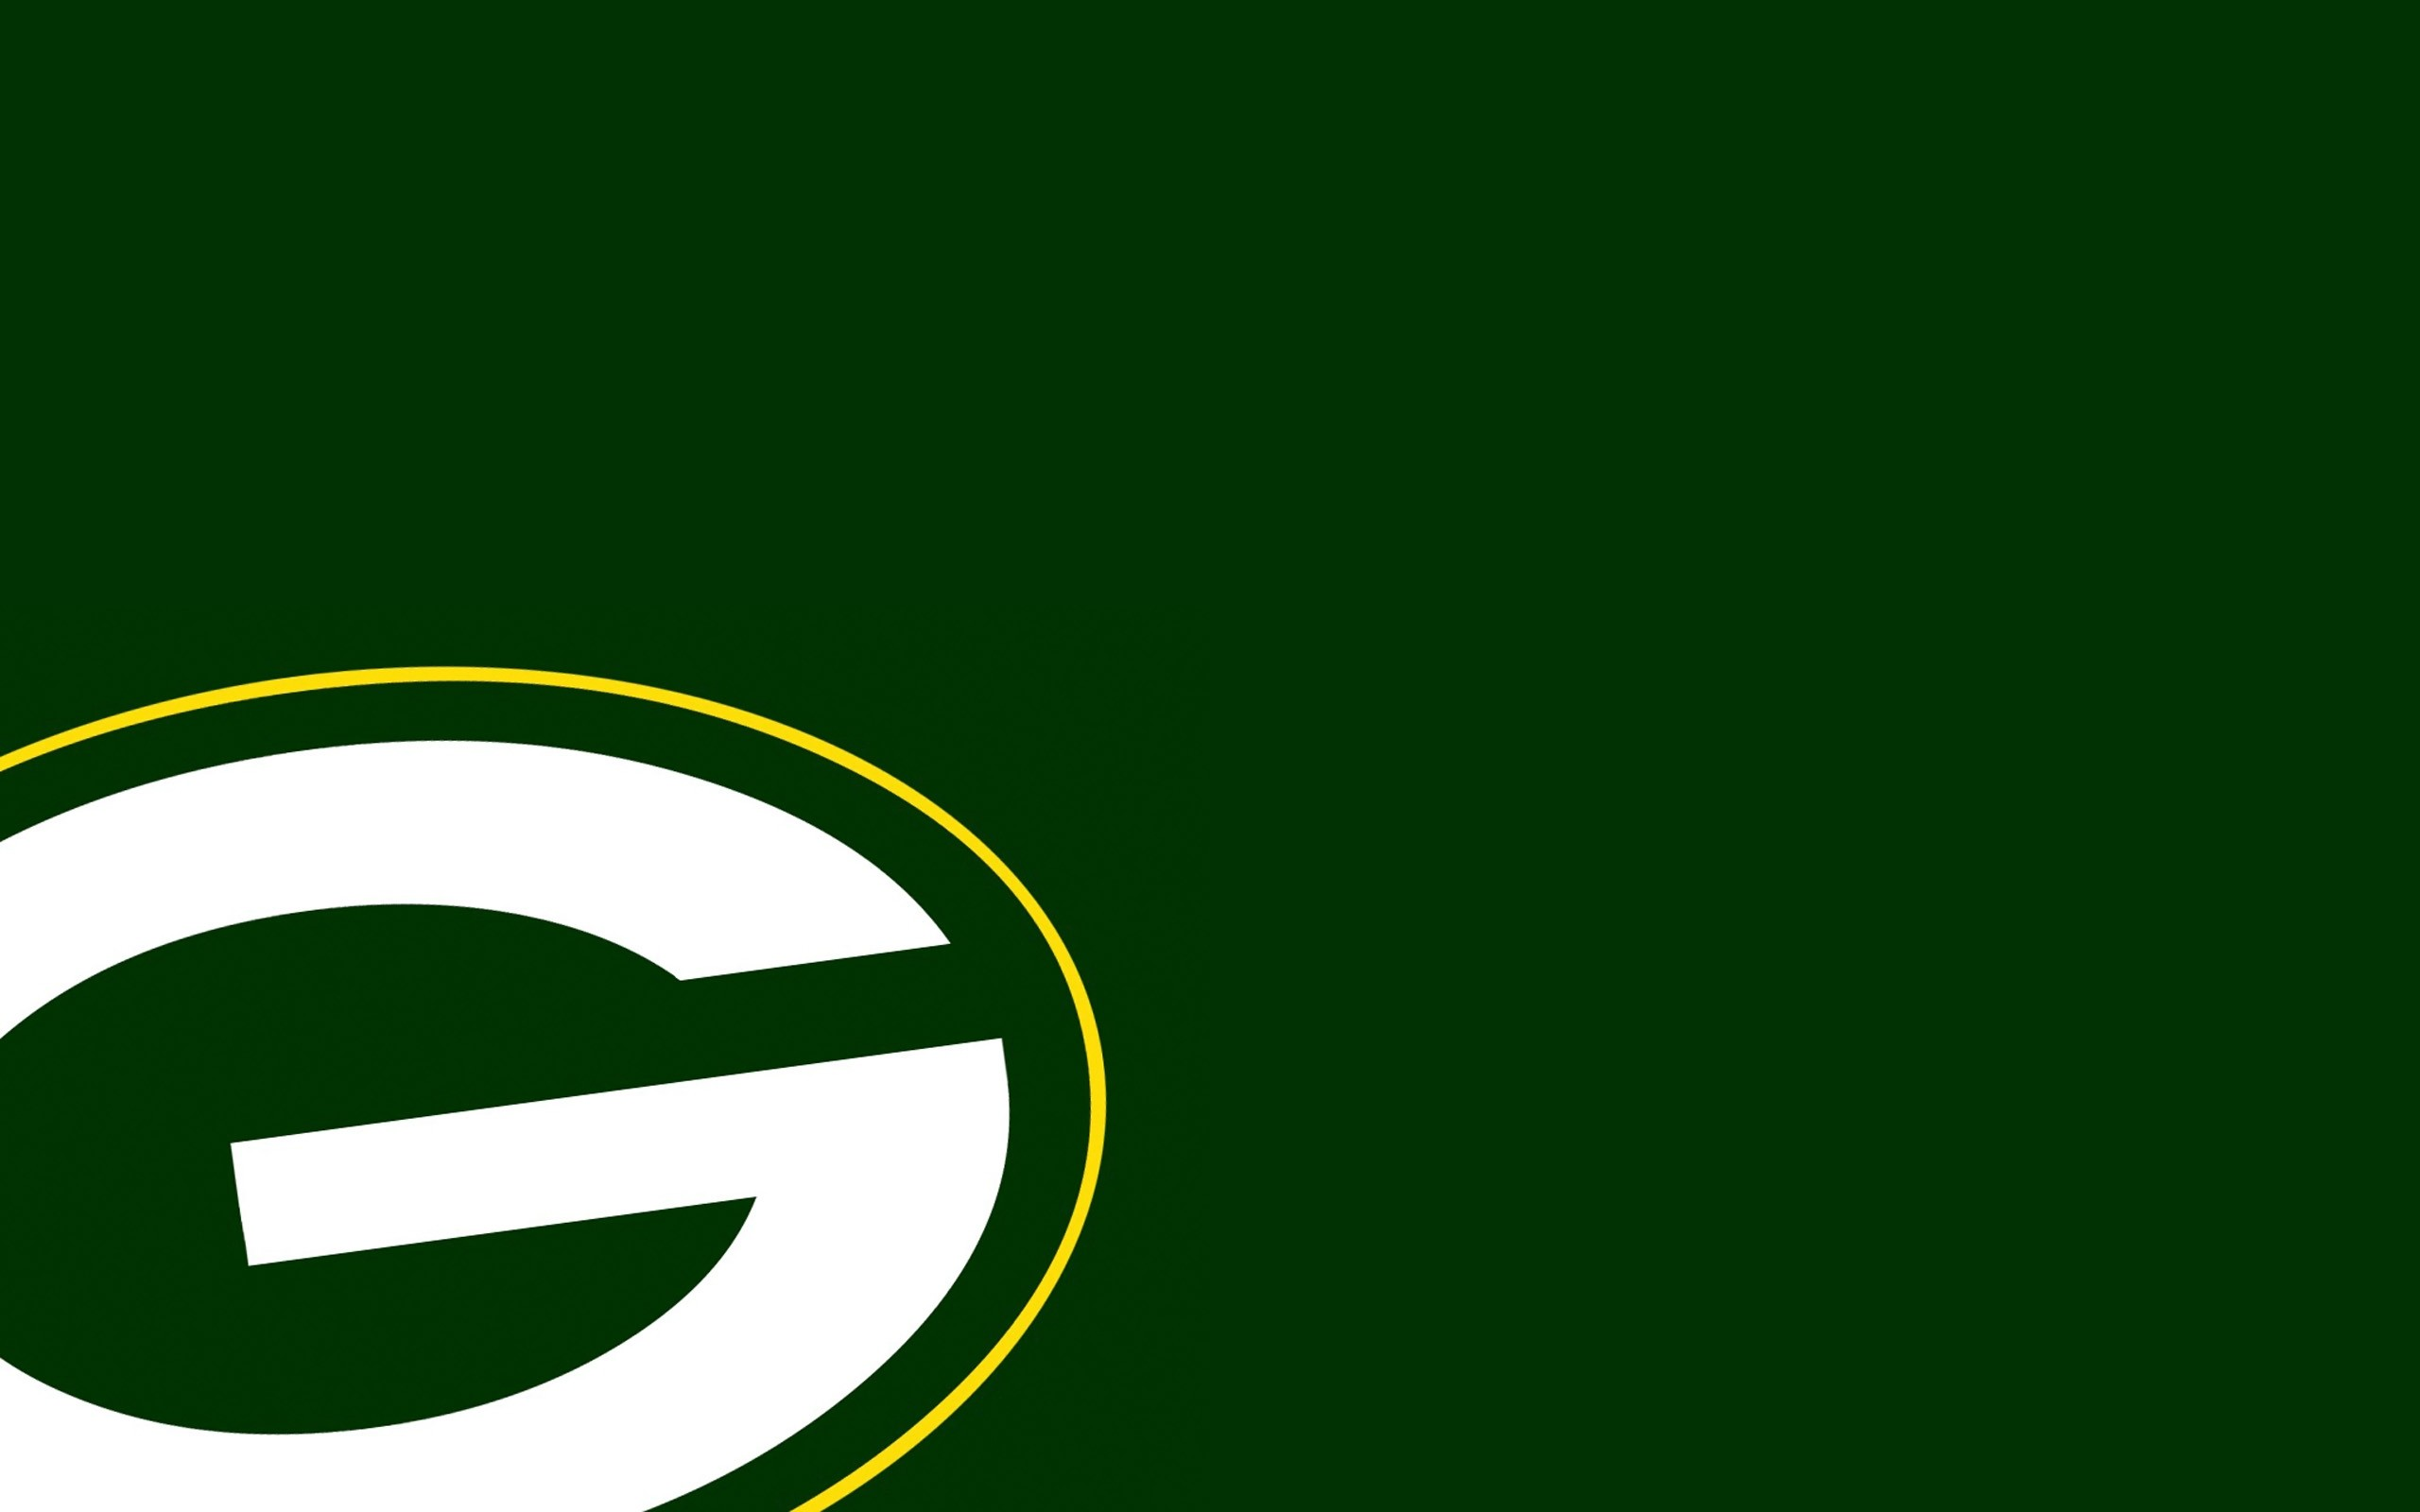 Green Bay Packer Wallpaper: Green Bay Packers Wallpapers ·① WallpaperTag